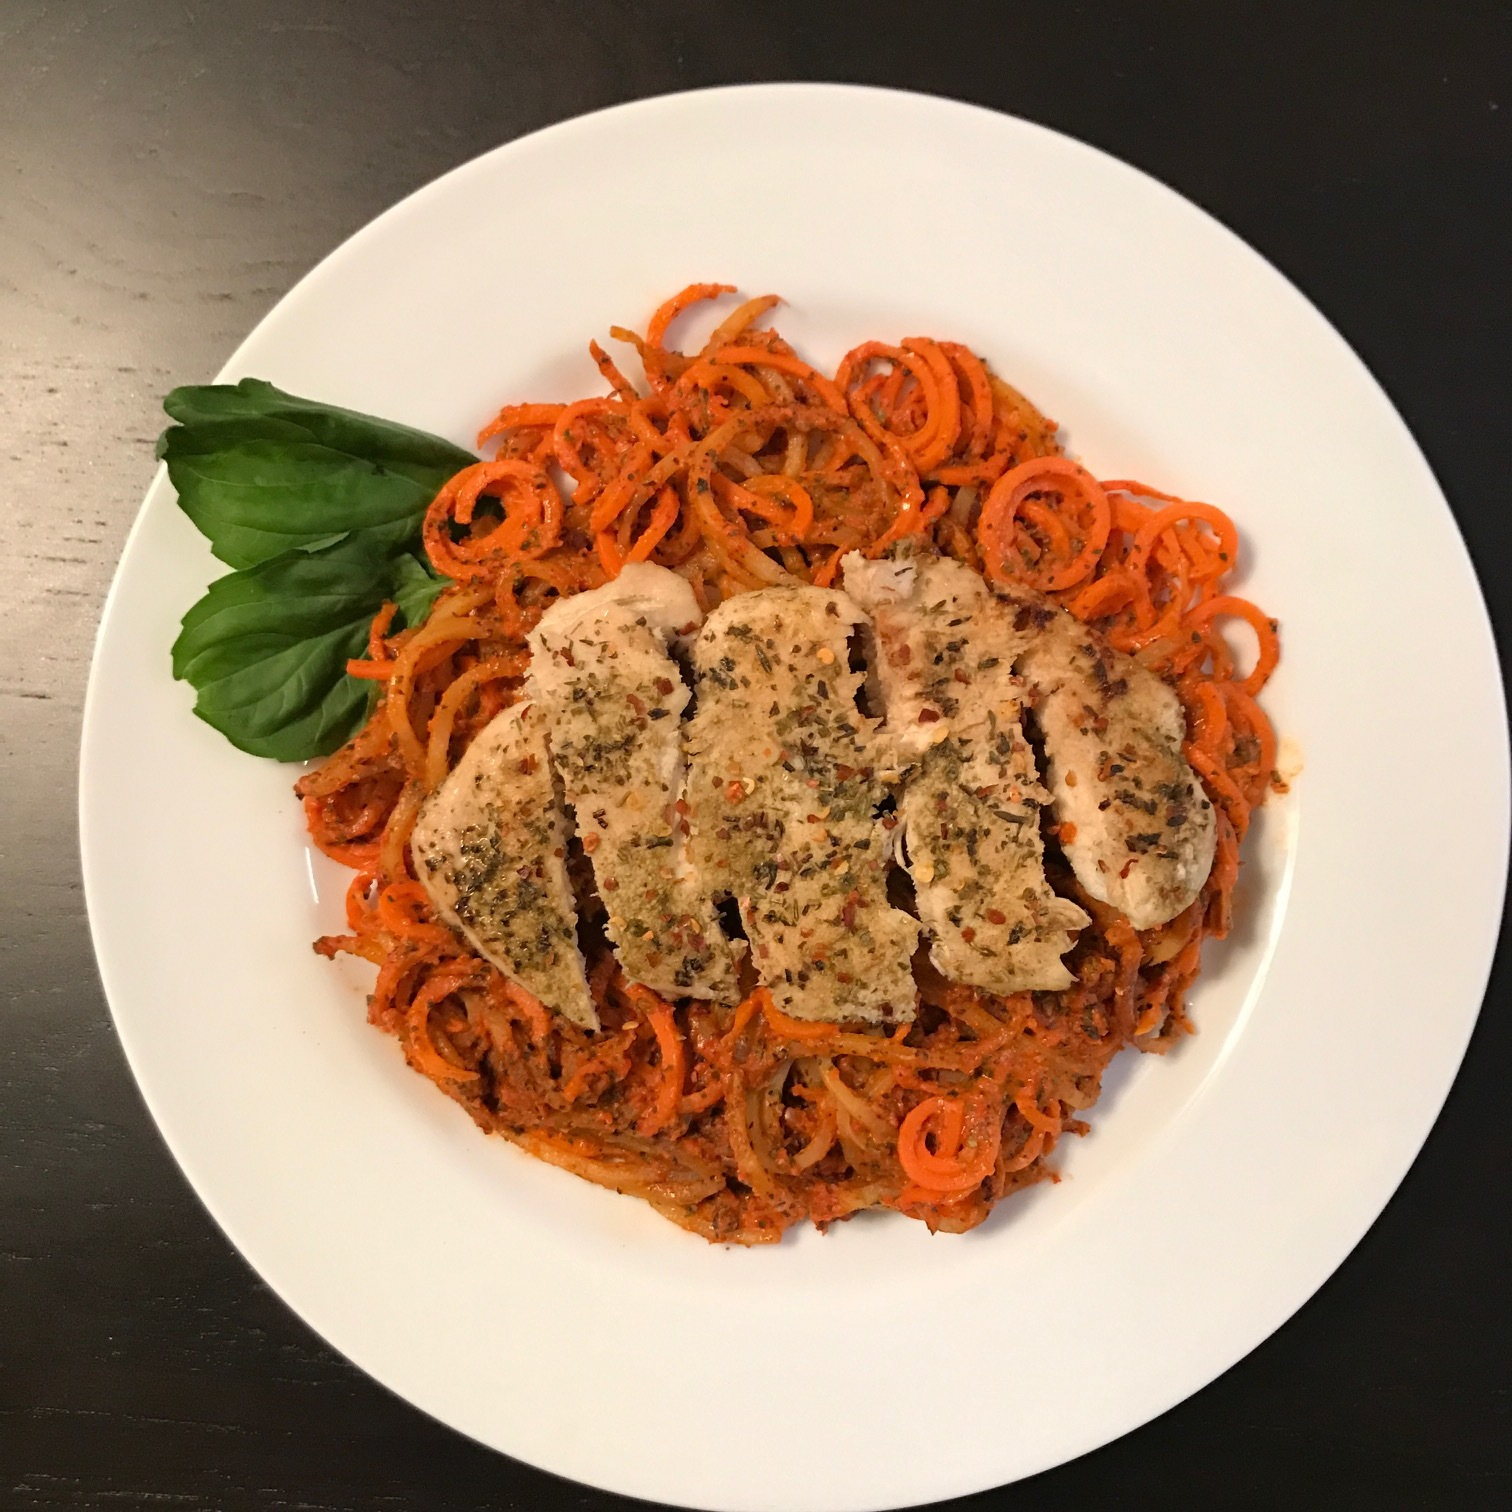 Roasted Red Pepper & Basil Pasta with Chicken - Paleo & Whole 30